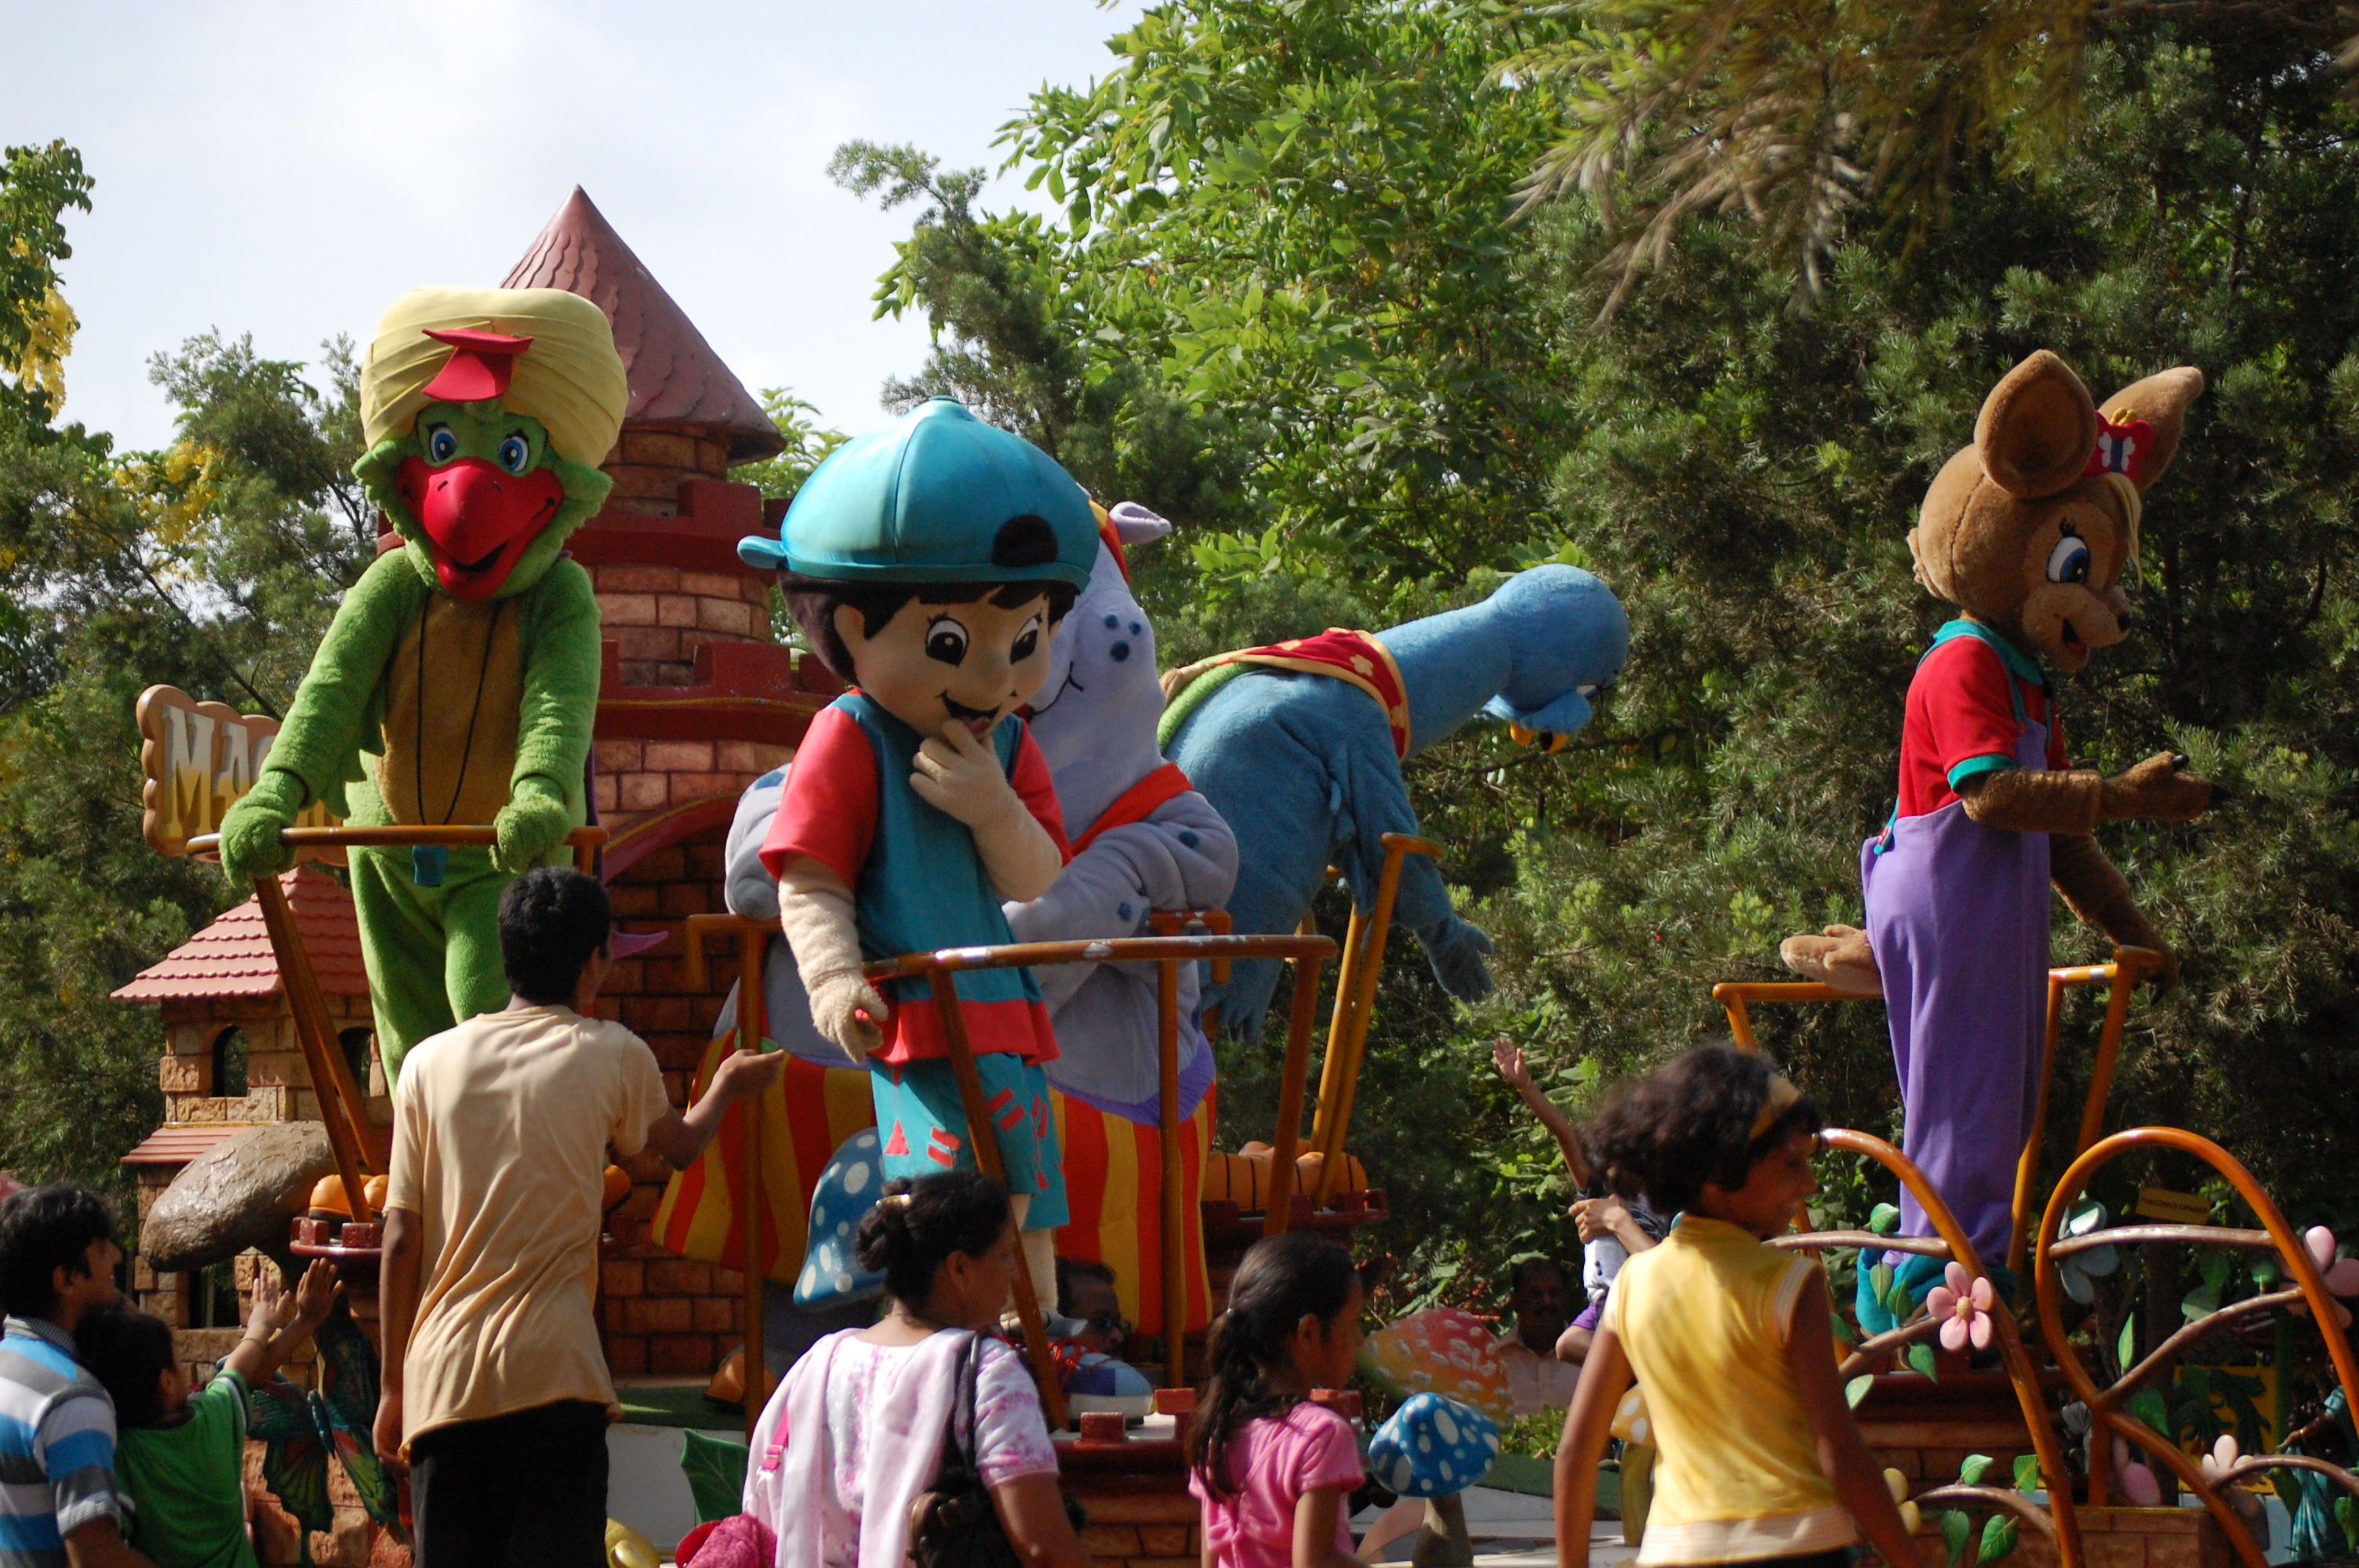 Esselworld theme park in mumbai thousand wonders esselworld gumiabroncs Choice Image